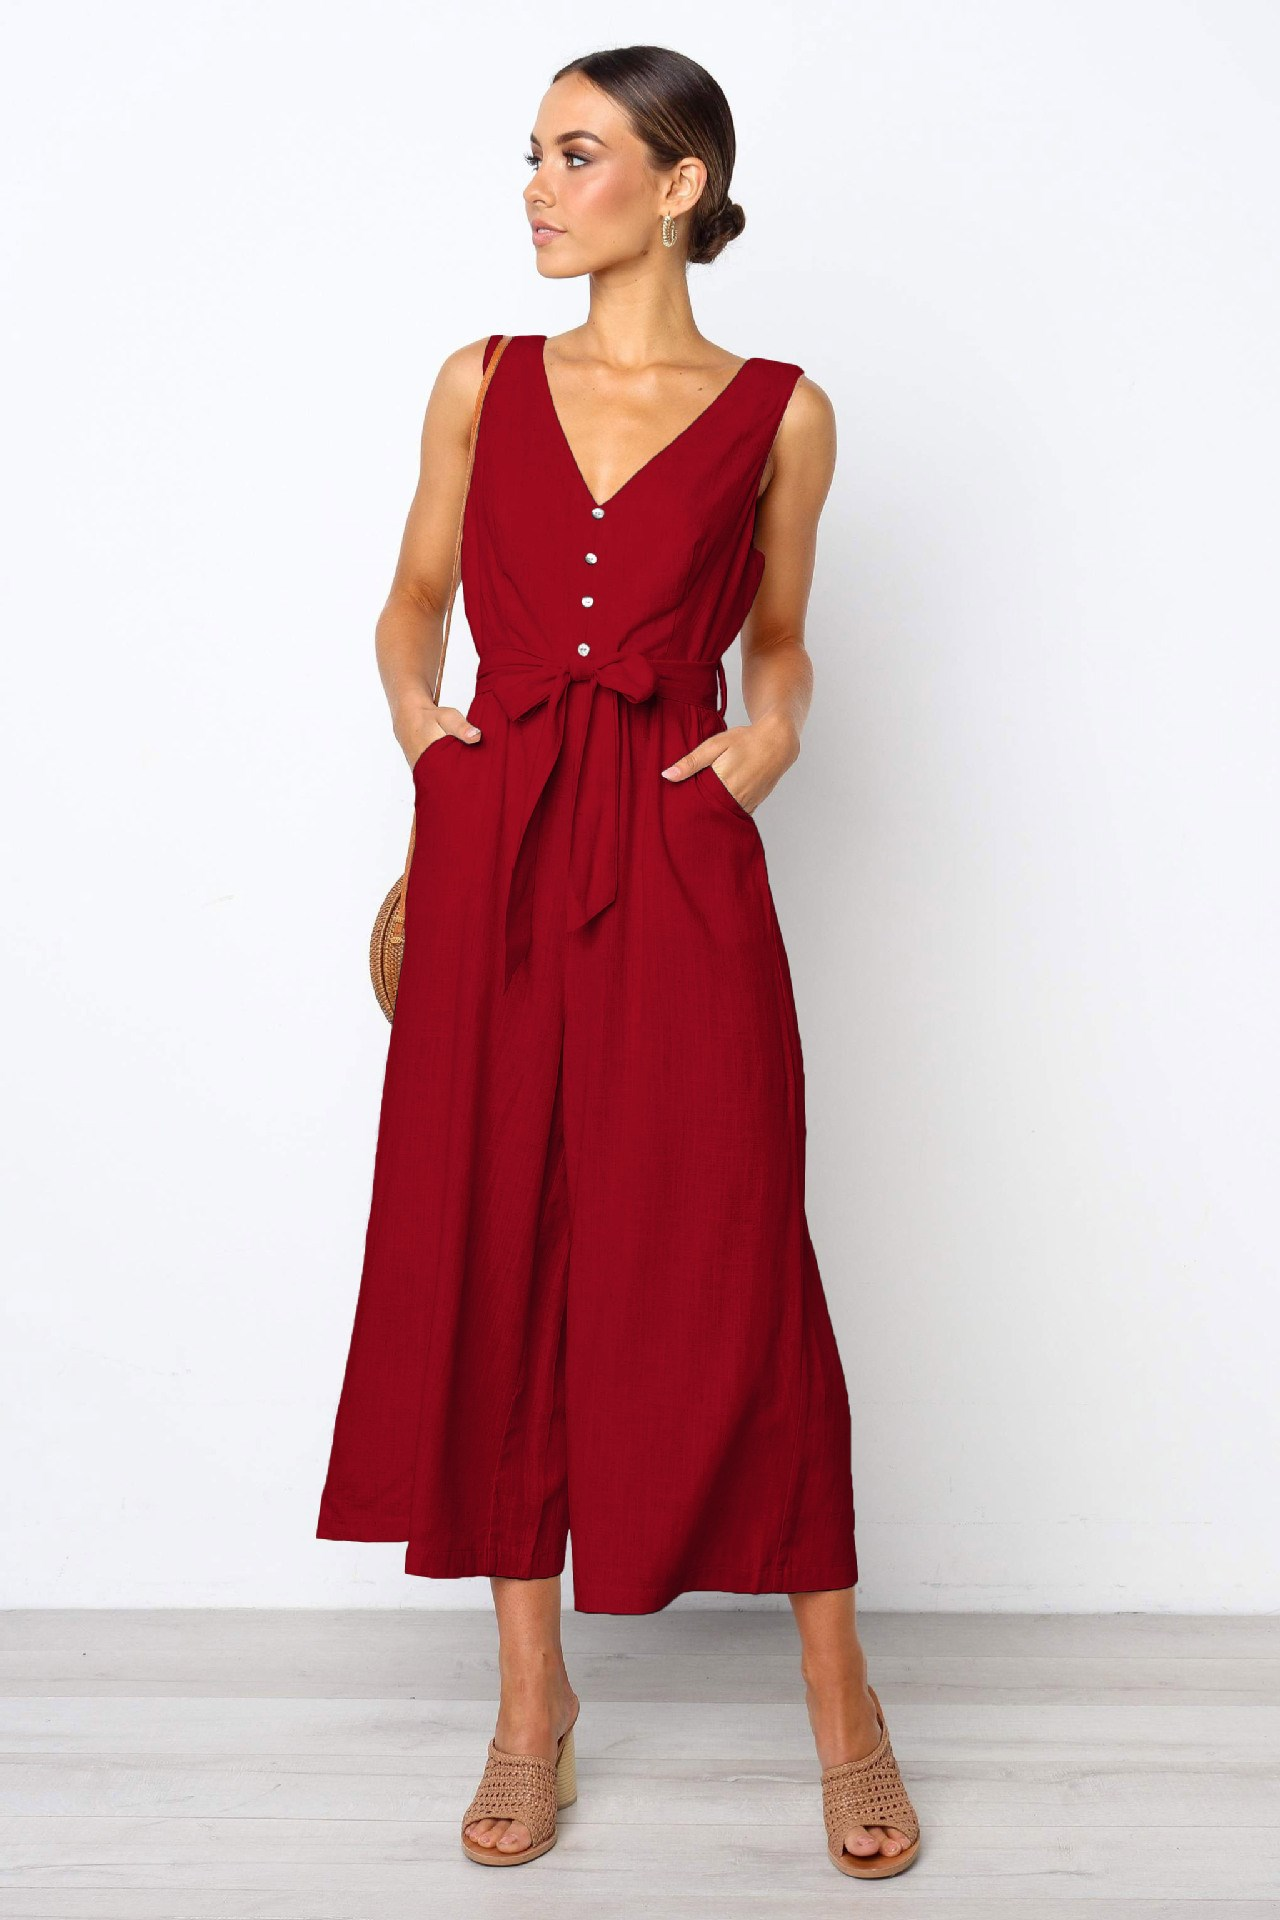 2019 Summer Casual Women Jumpsuits Beach Solid Red Jumpsuit Female Wide Leg Bow Romper